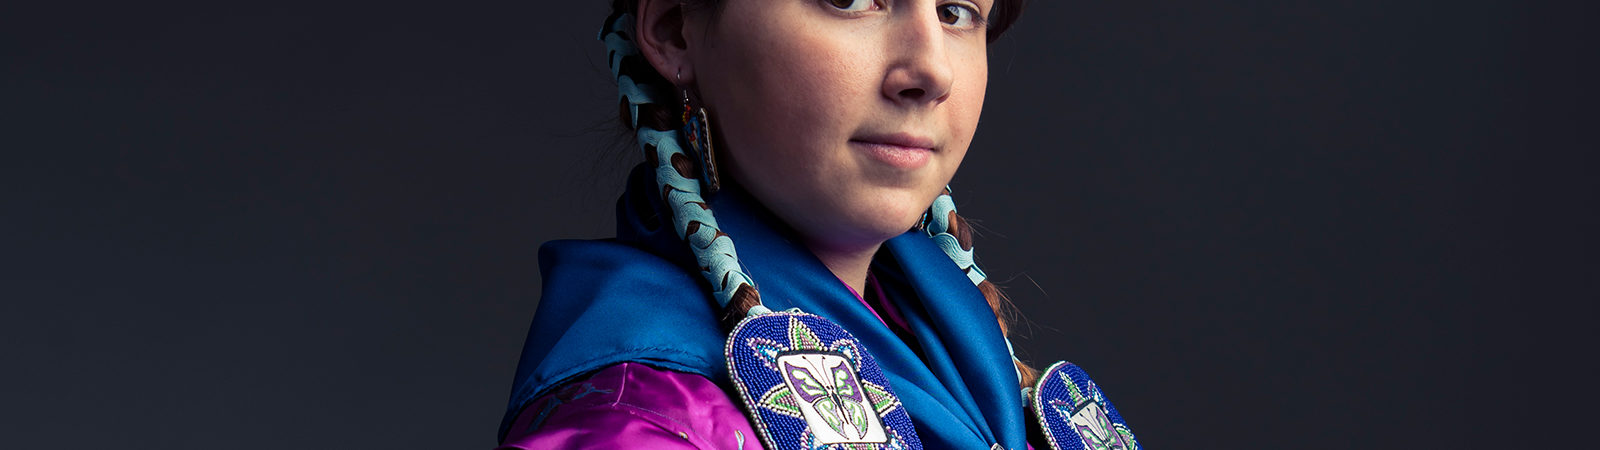 Stephanie Red Cloud Muise